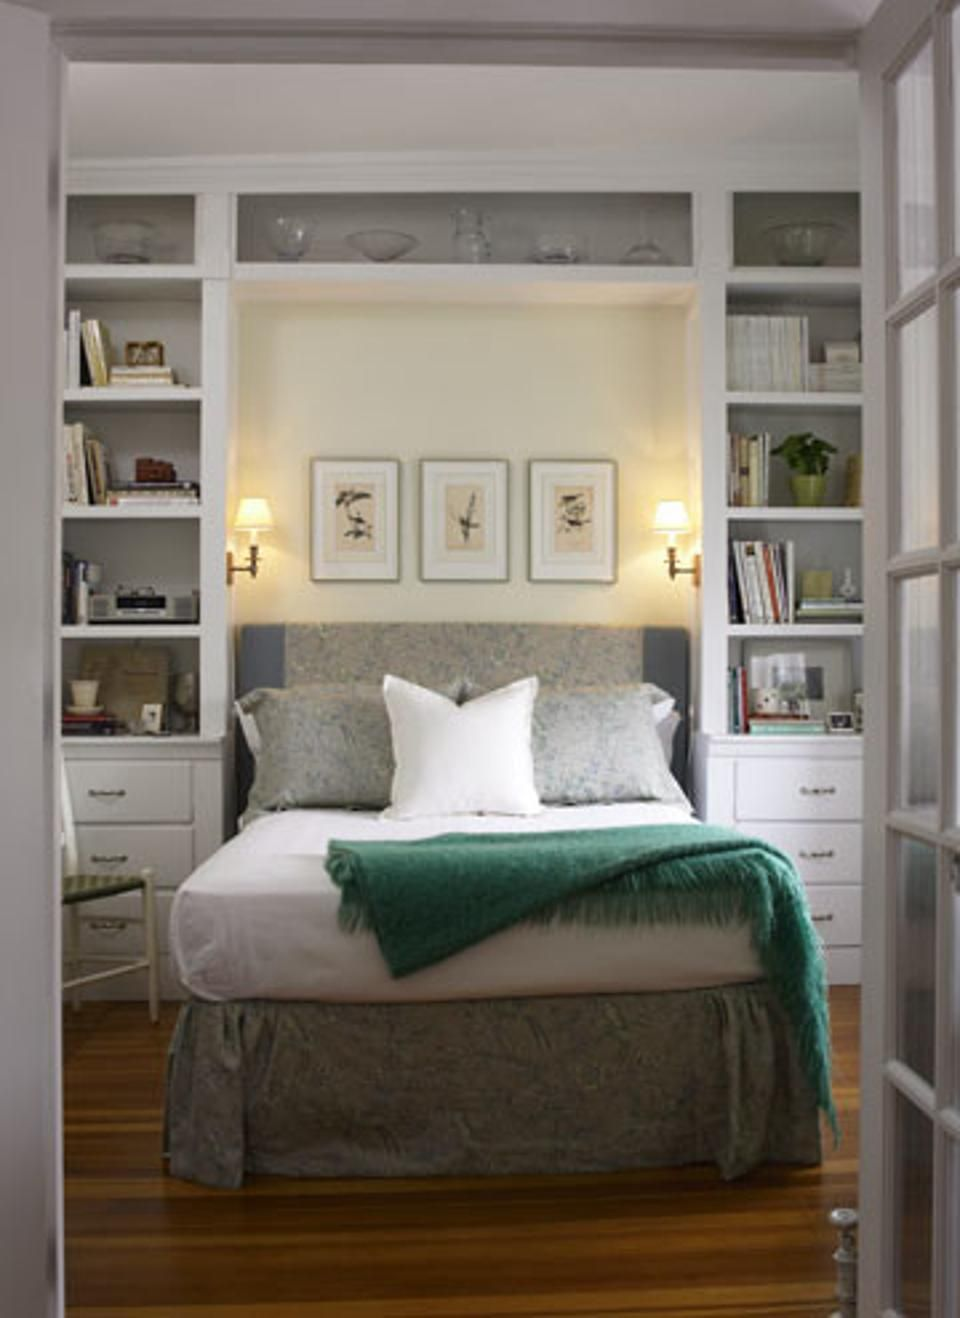 10 tips to make a small bedroom look great for the home - Shallow dressers for small spaces ...